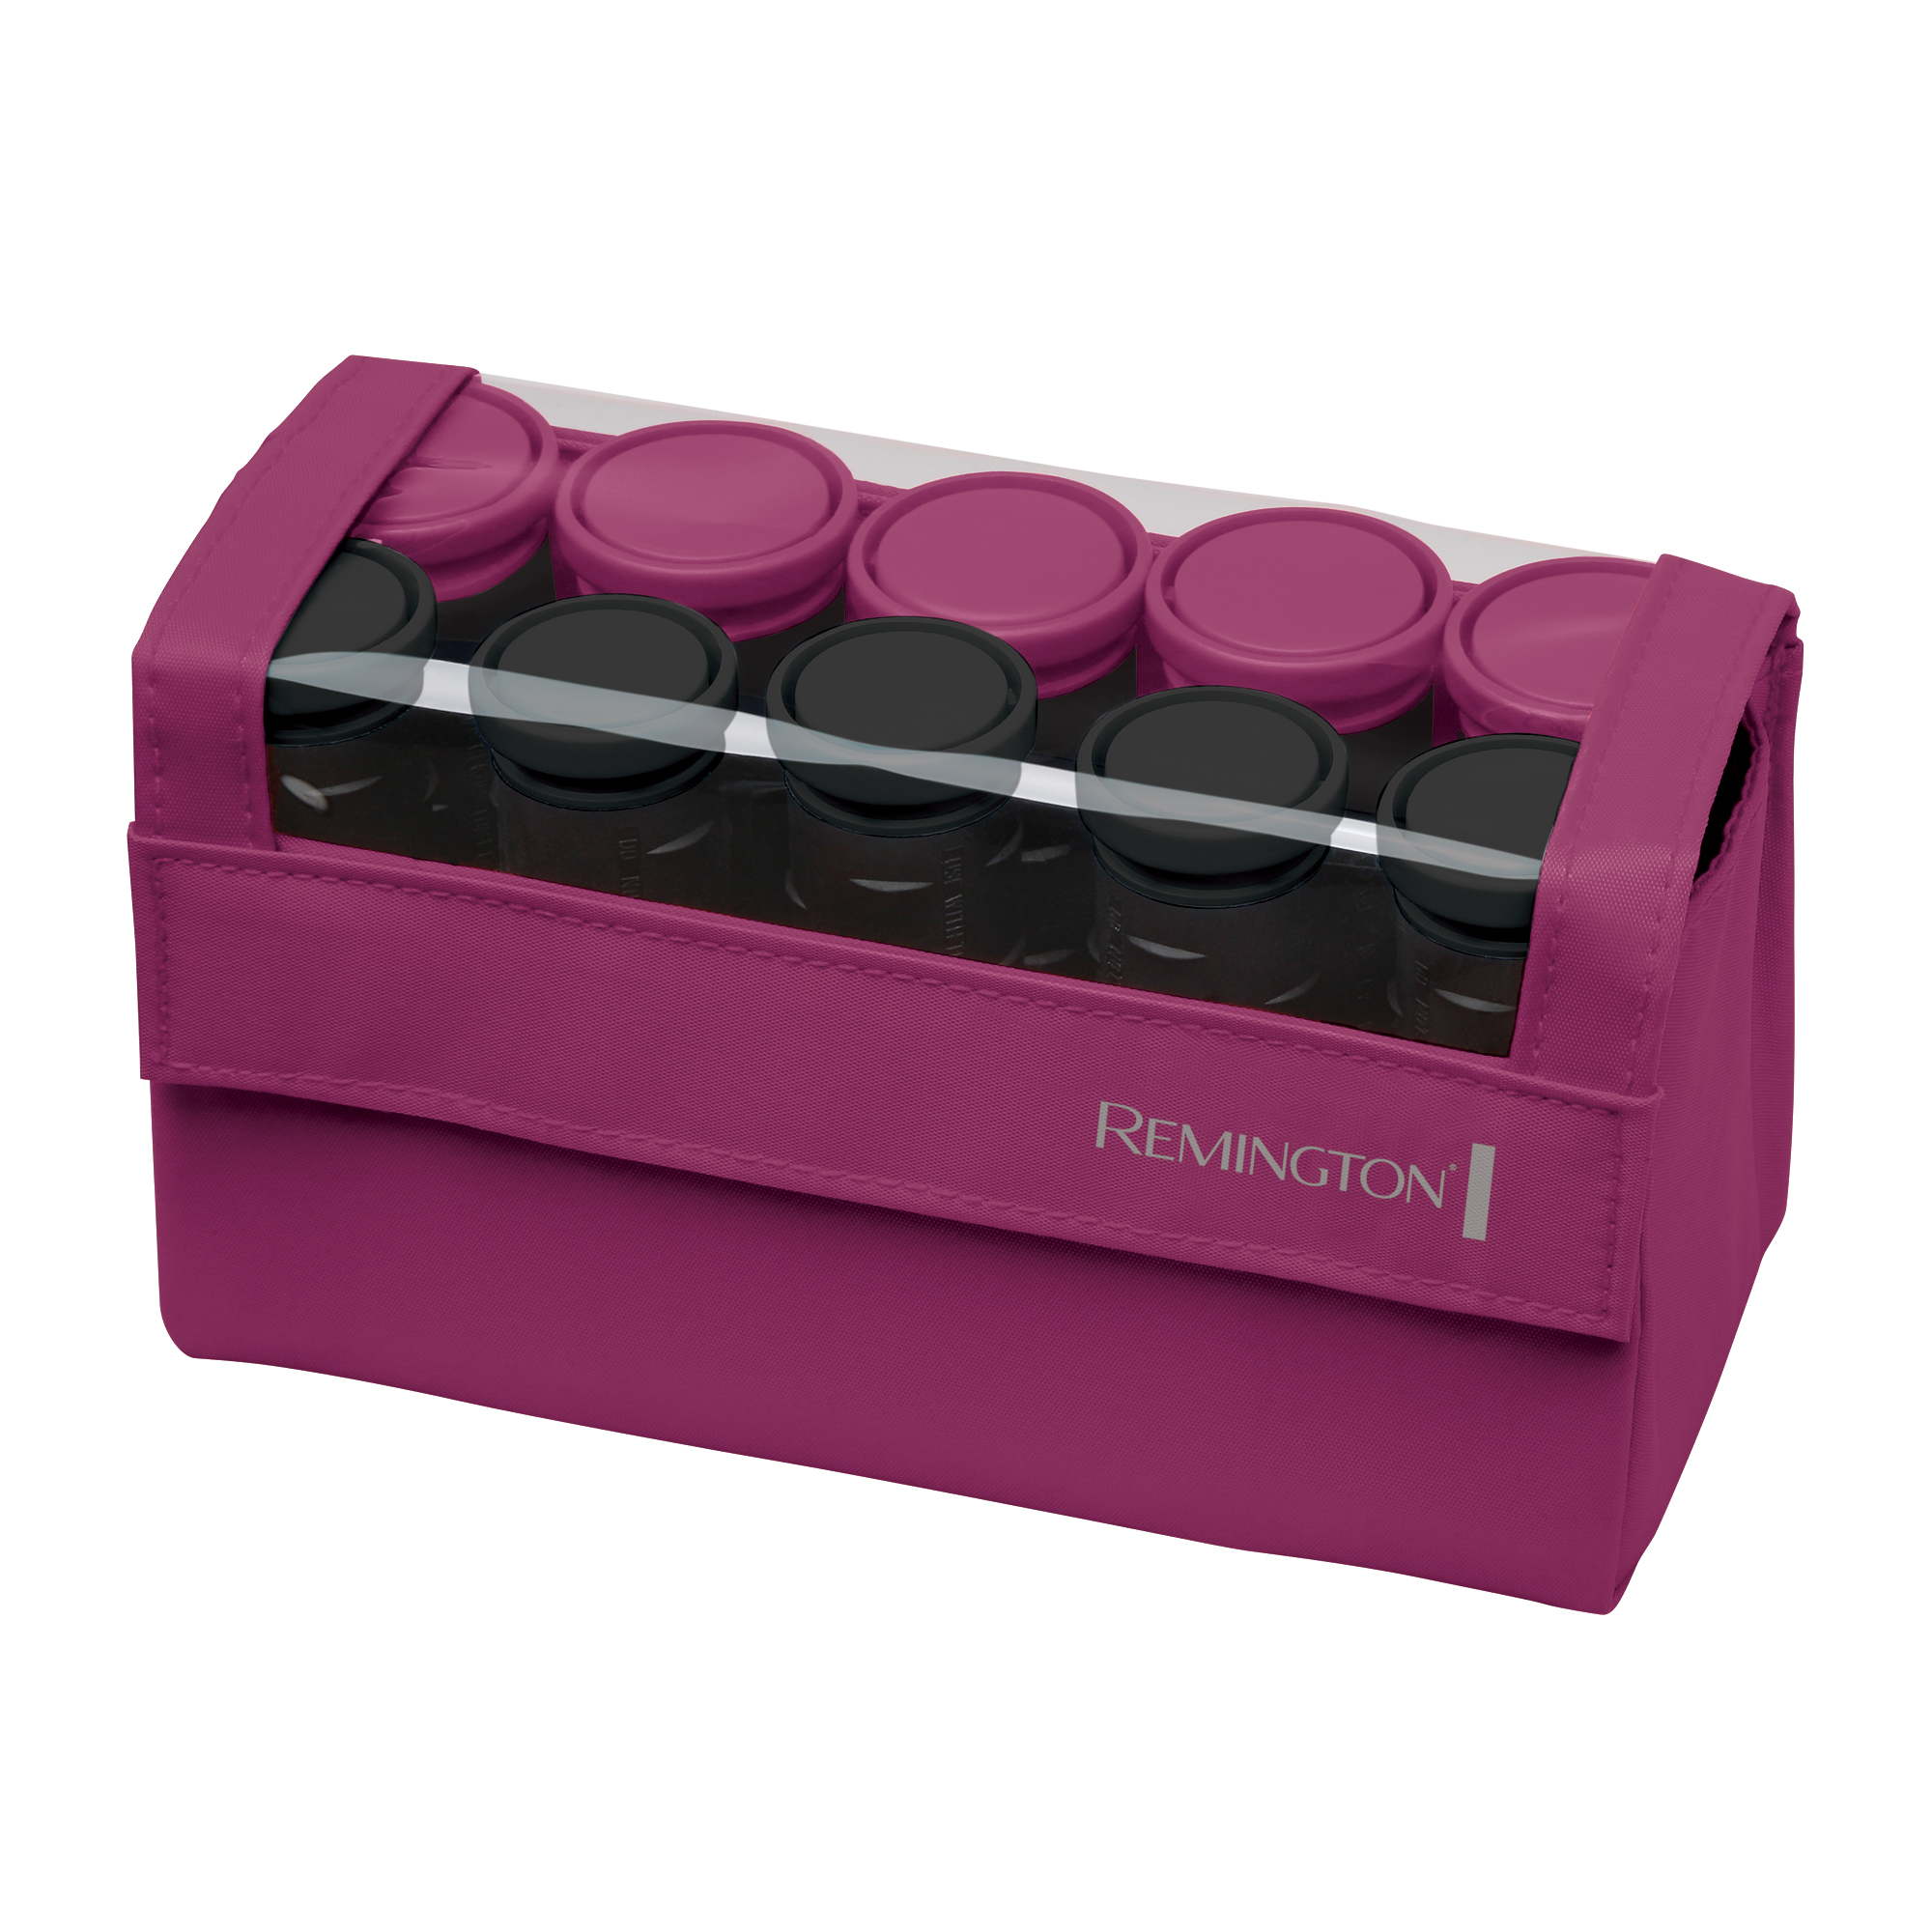 Remington Compact Hot Rollers, Purple, H1015H